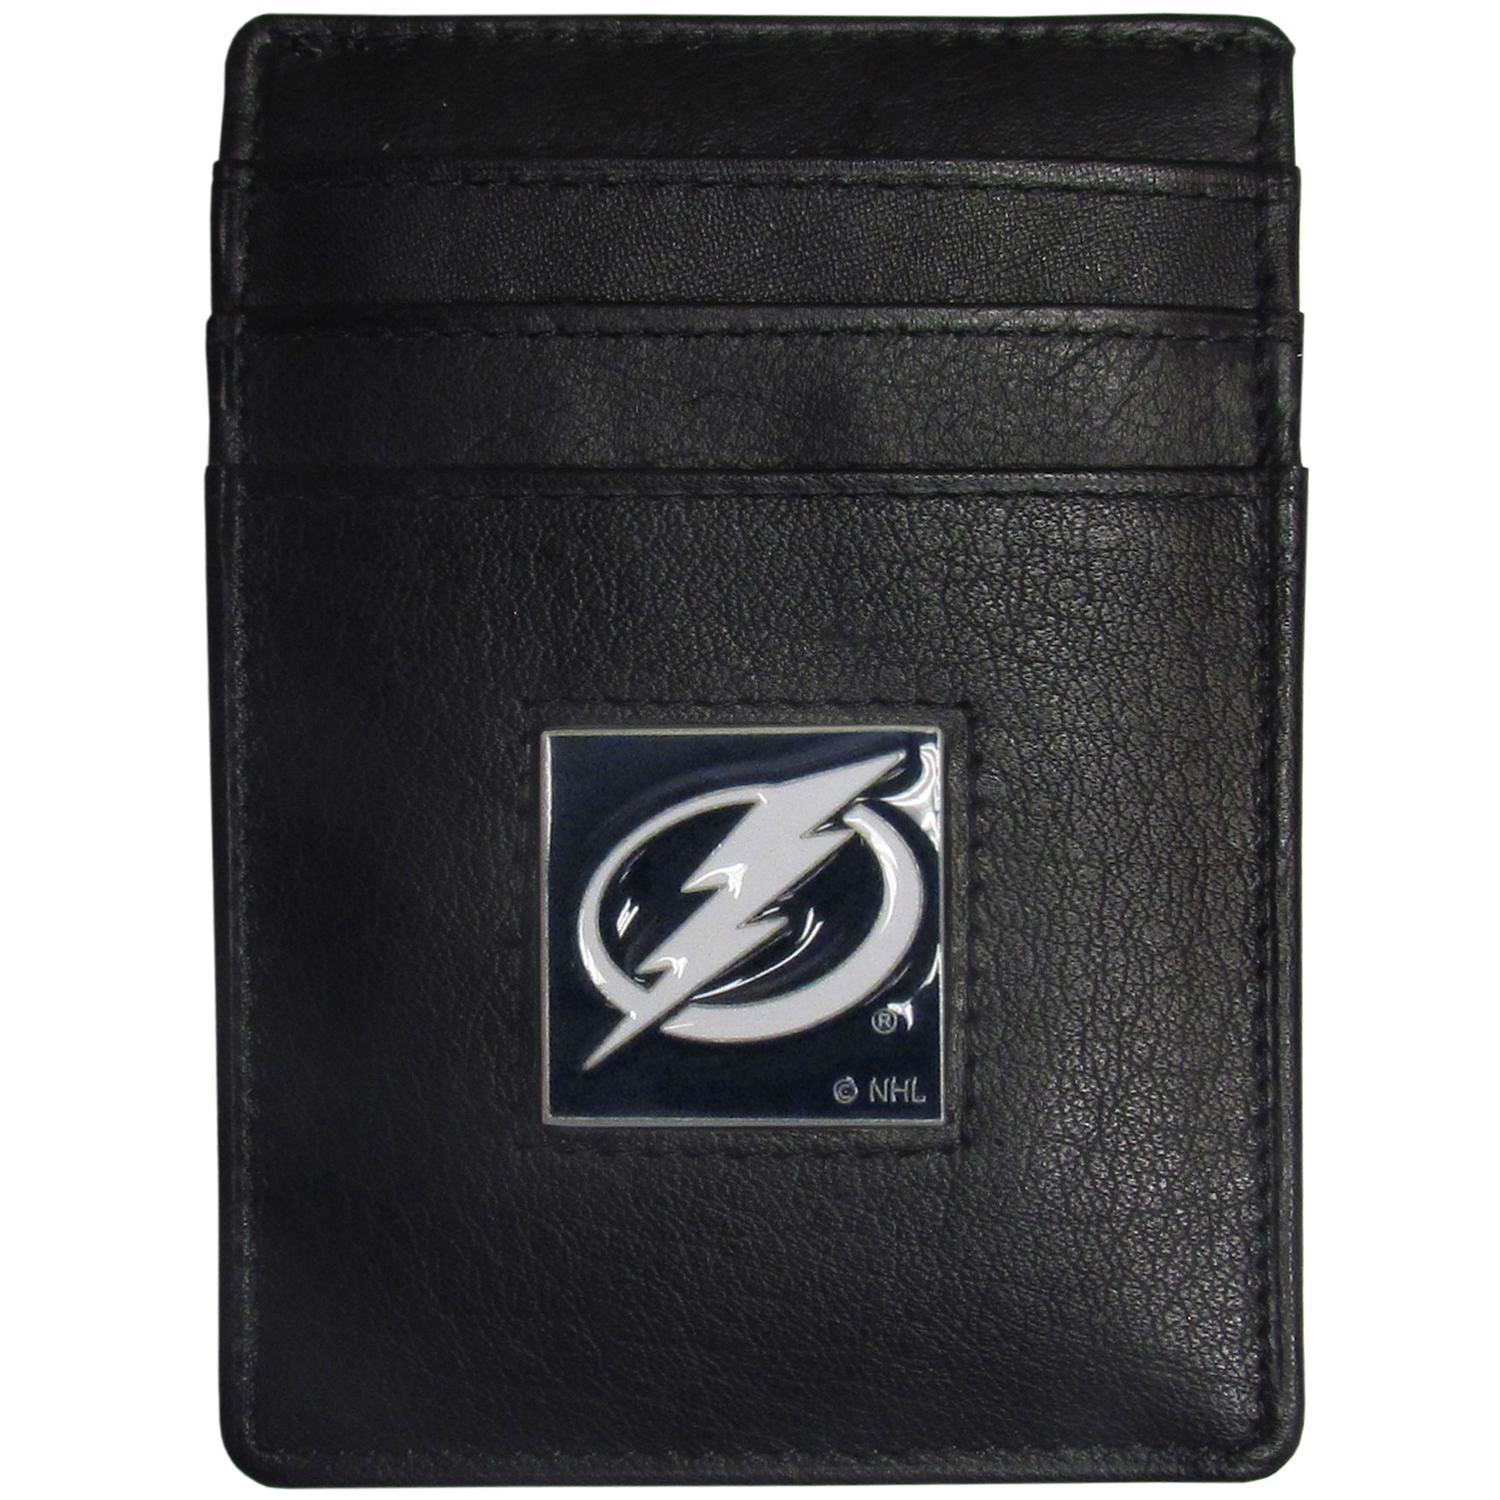 Tampa Bay Lightning® Leather Money Clip/Cardholder - Our officially licensed Money Clip/Card Holders won't make you choose between paper or plastic because they stow both easily. Features our sculpted and enameled Tampa Bay Lightning® emblem on the front of the wallet.